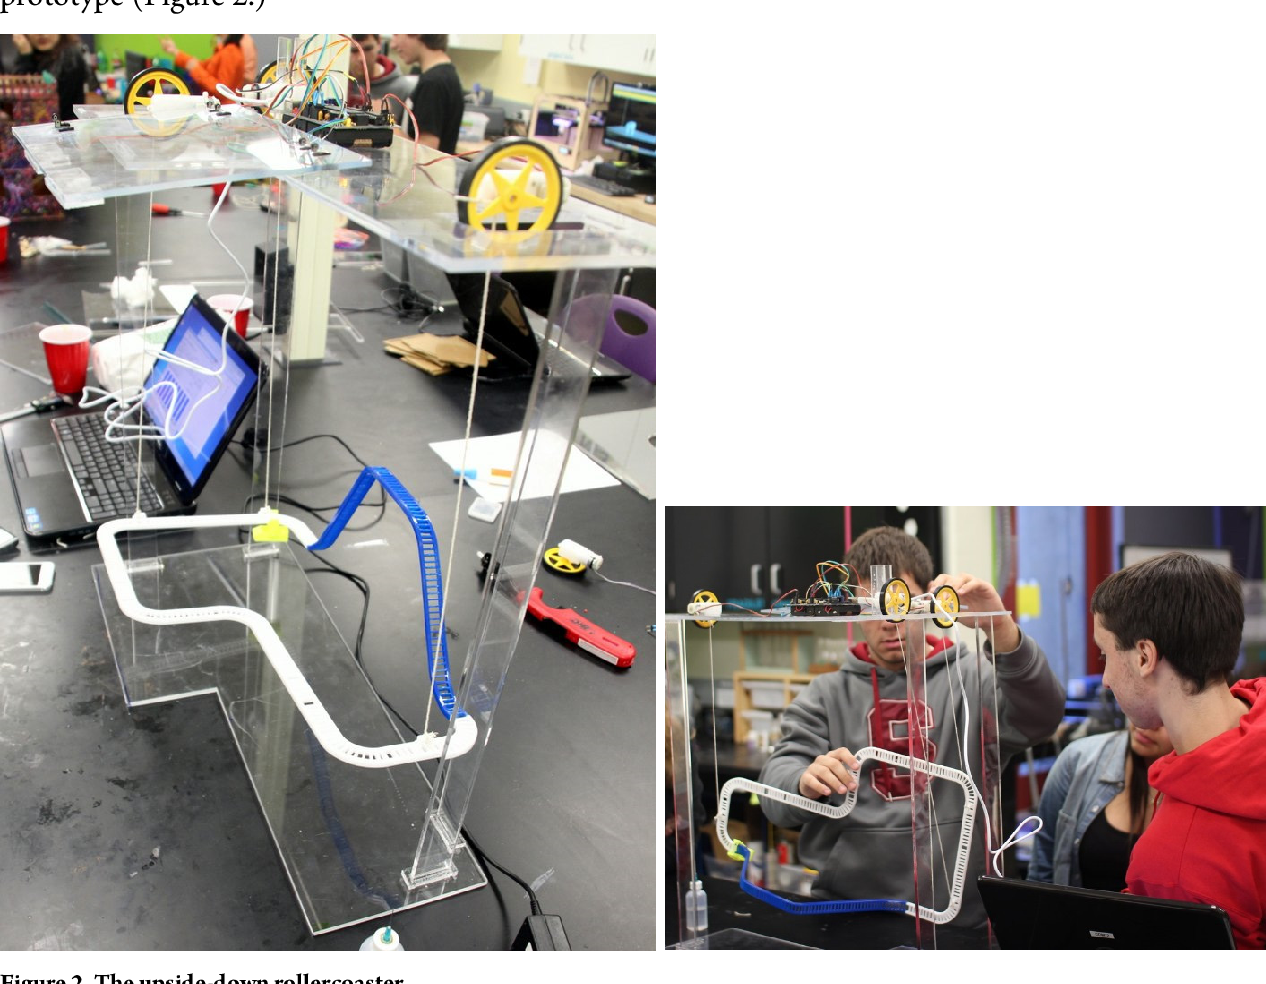 PDF] Digital Fabrication and Making' in Education: The Democratization of  Invention | Semantic Scholar